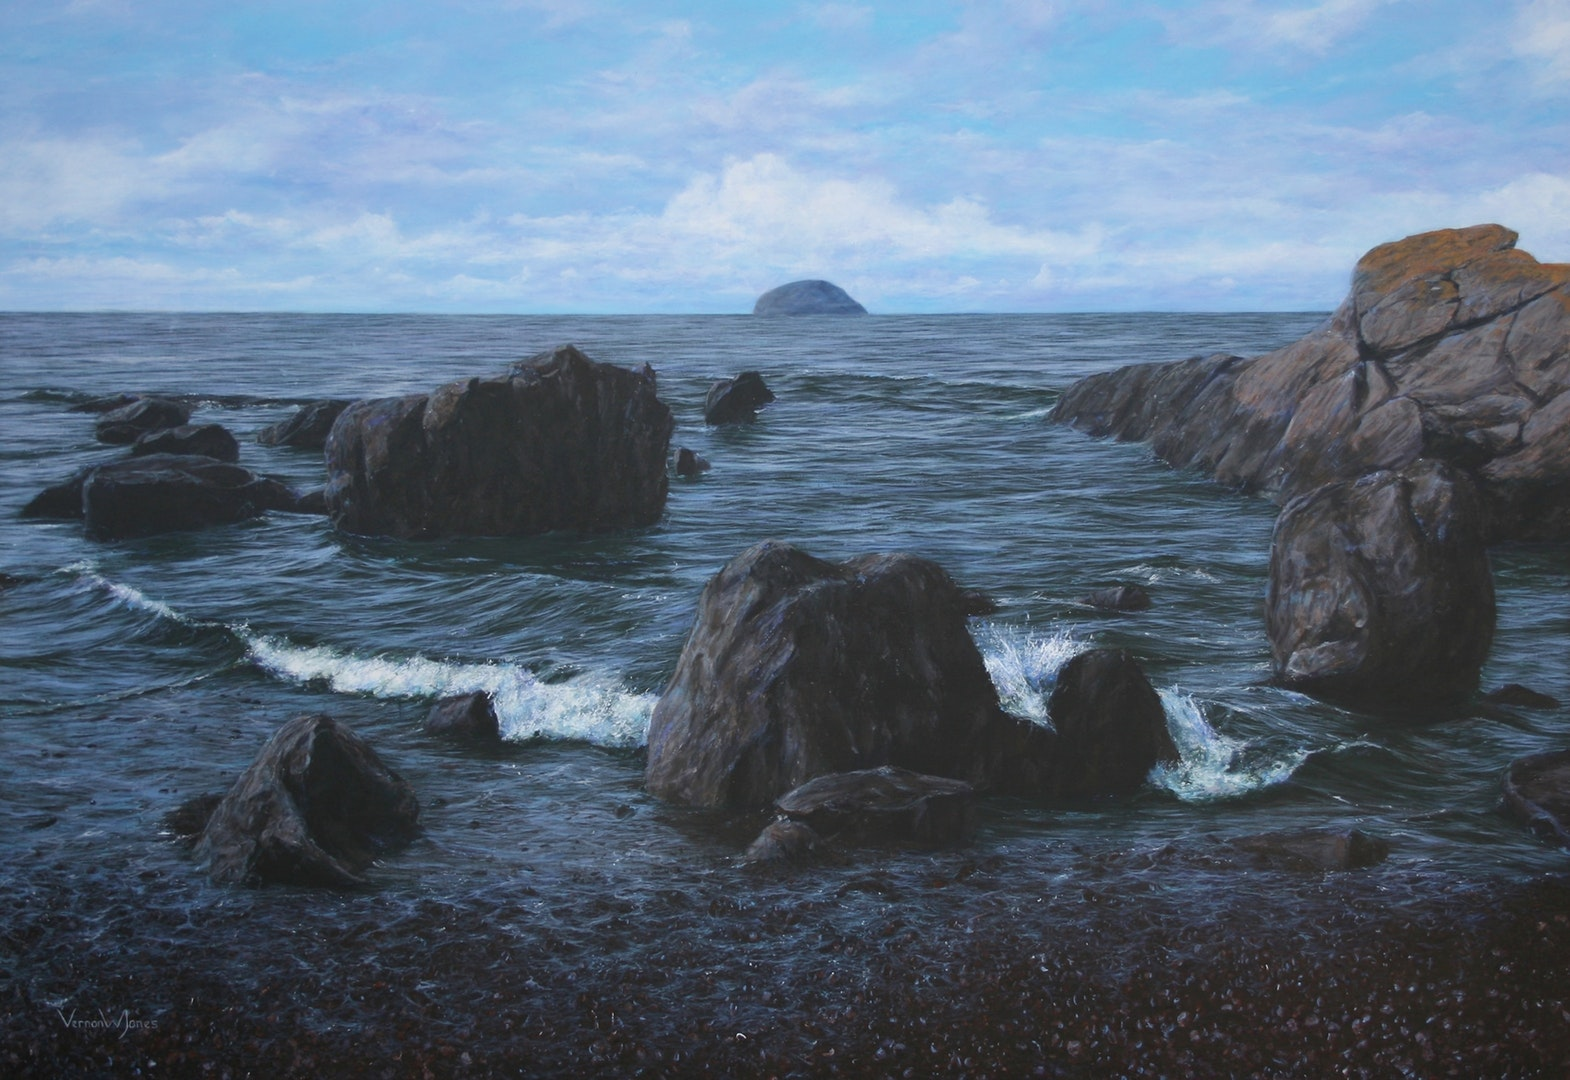 'Passing between the rocks at Girvan', Vernon W Jones, Acrylic on canvas, 110 x 160 cm